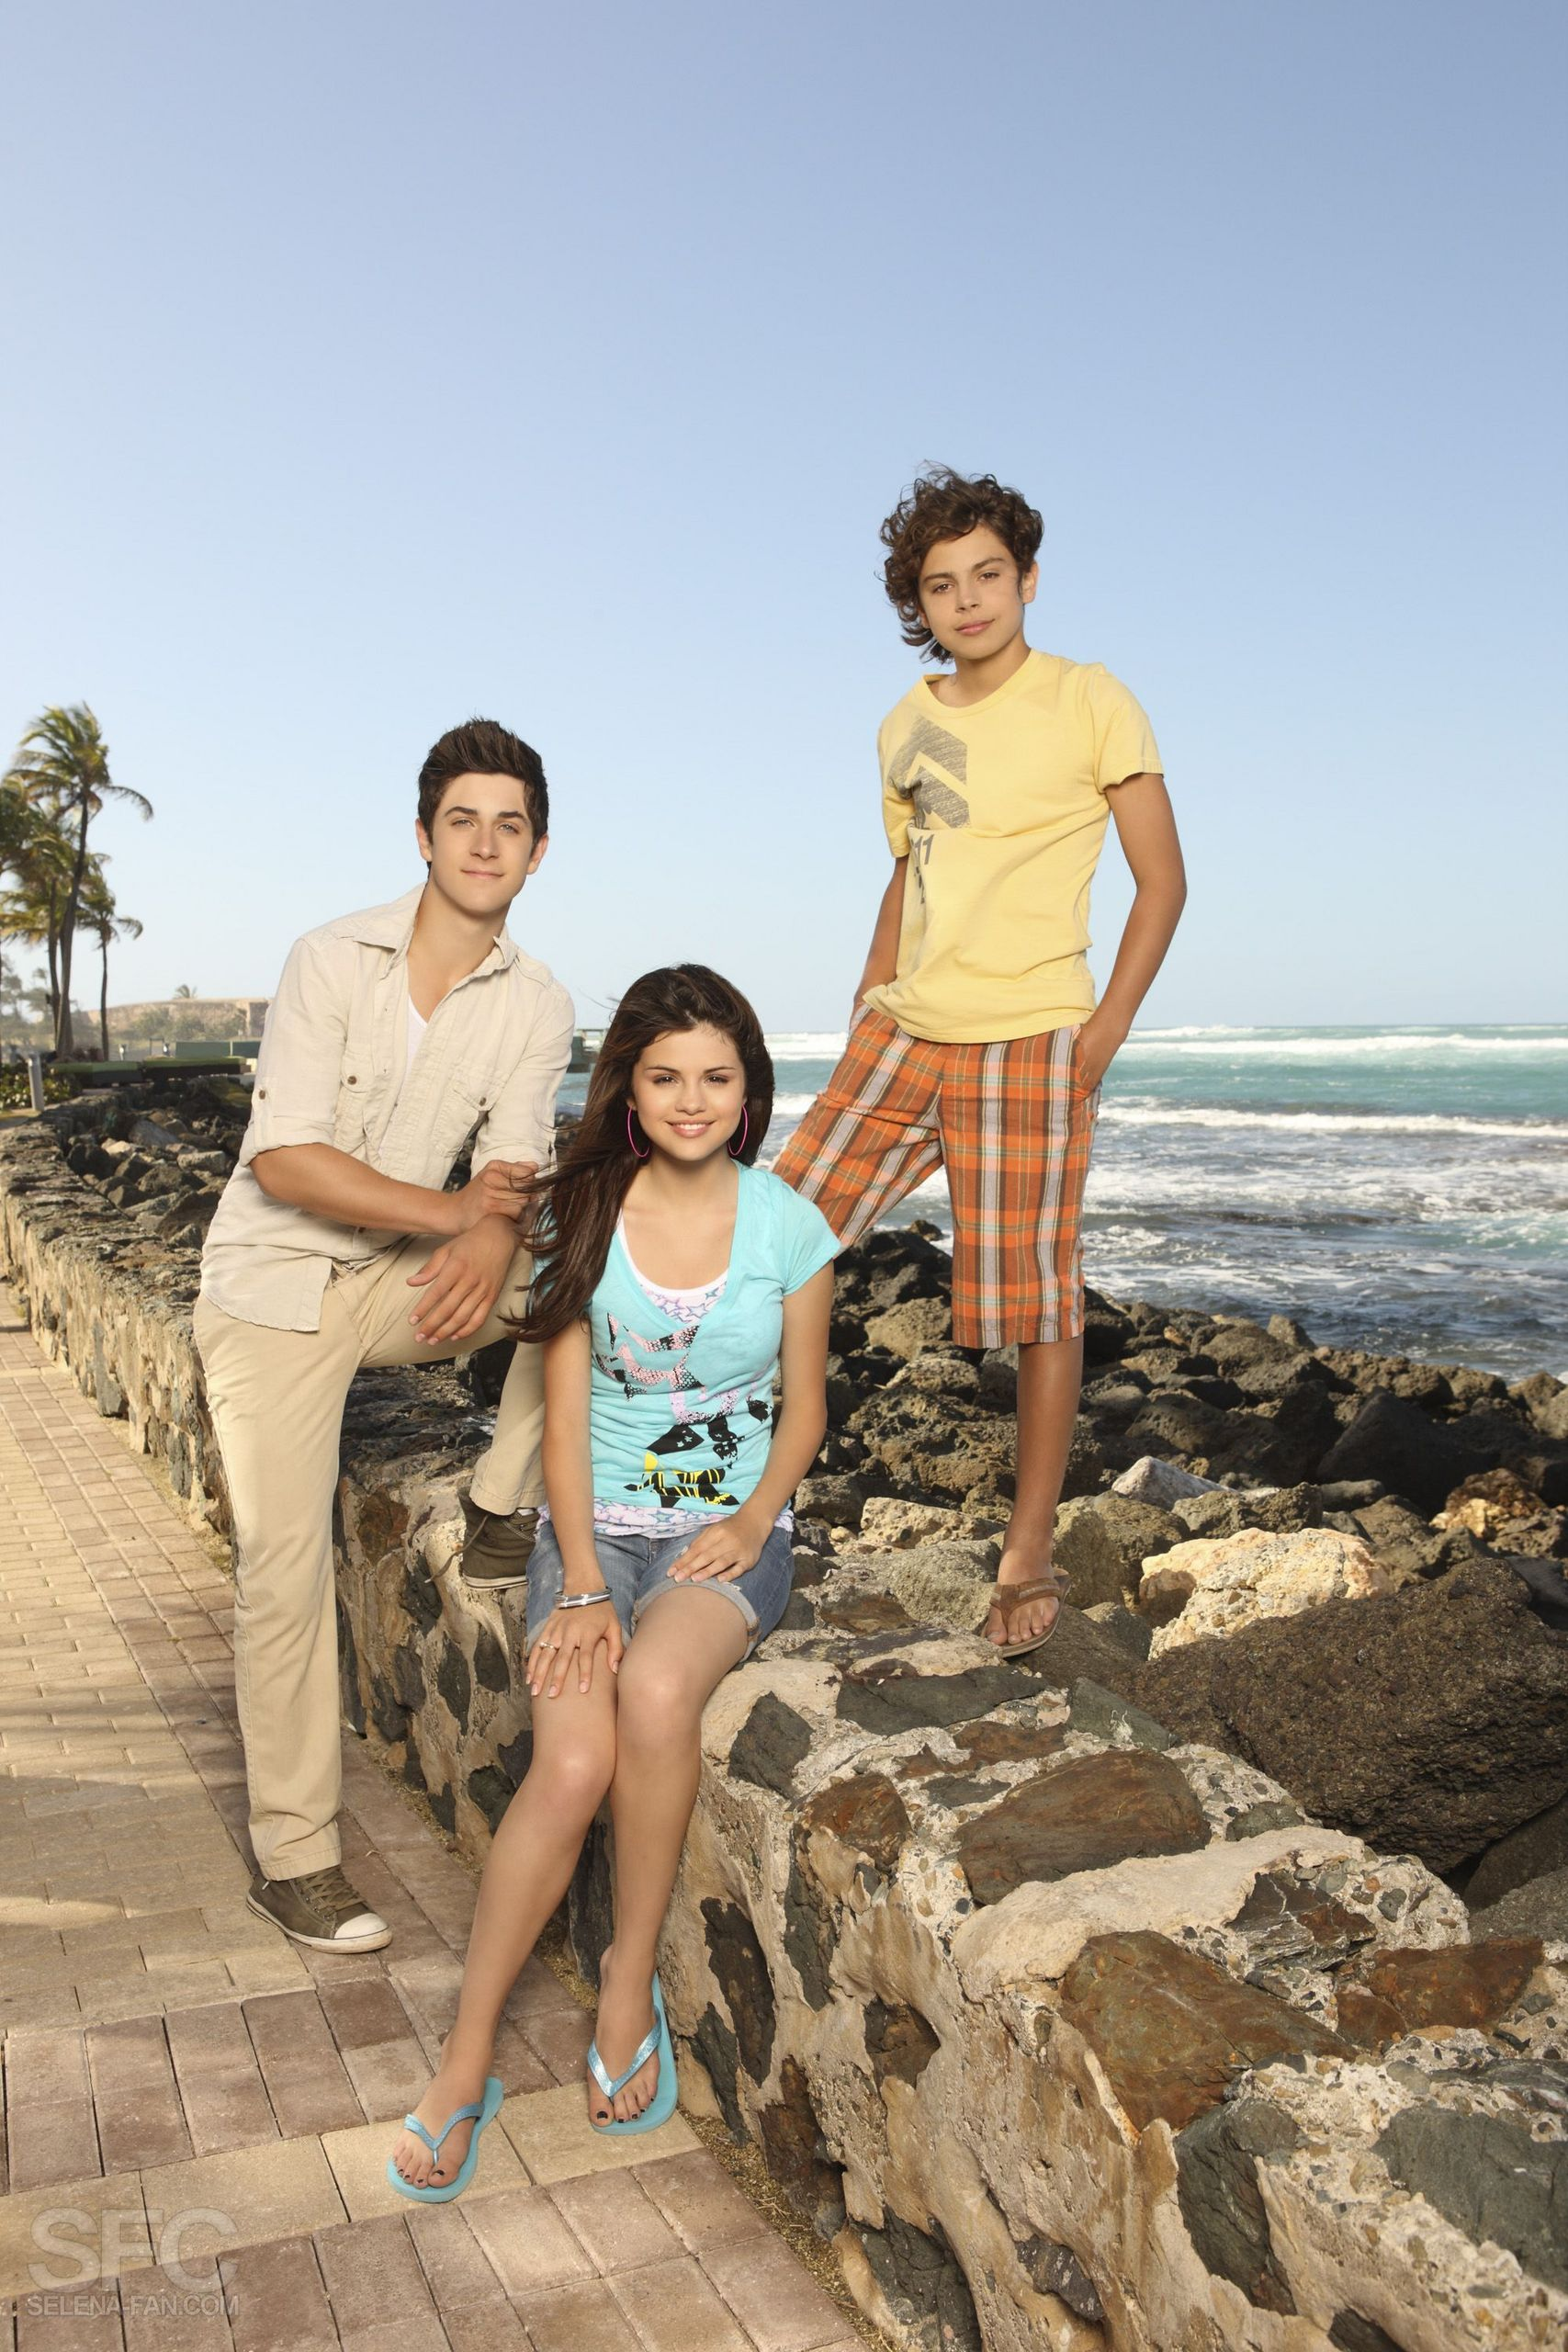 jake t austin movies - photo #21